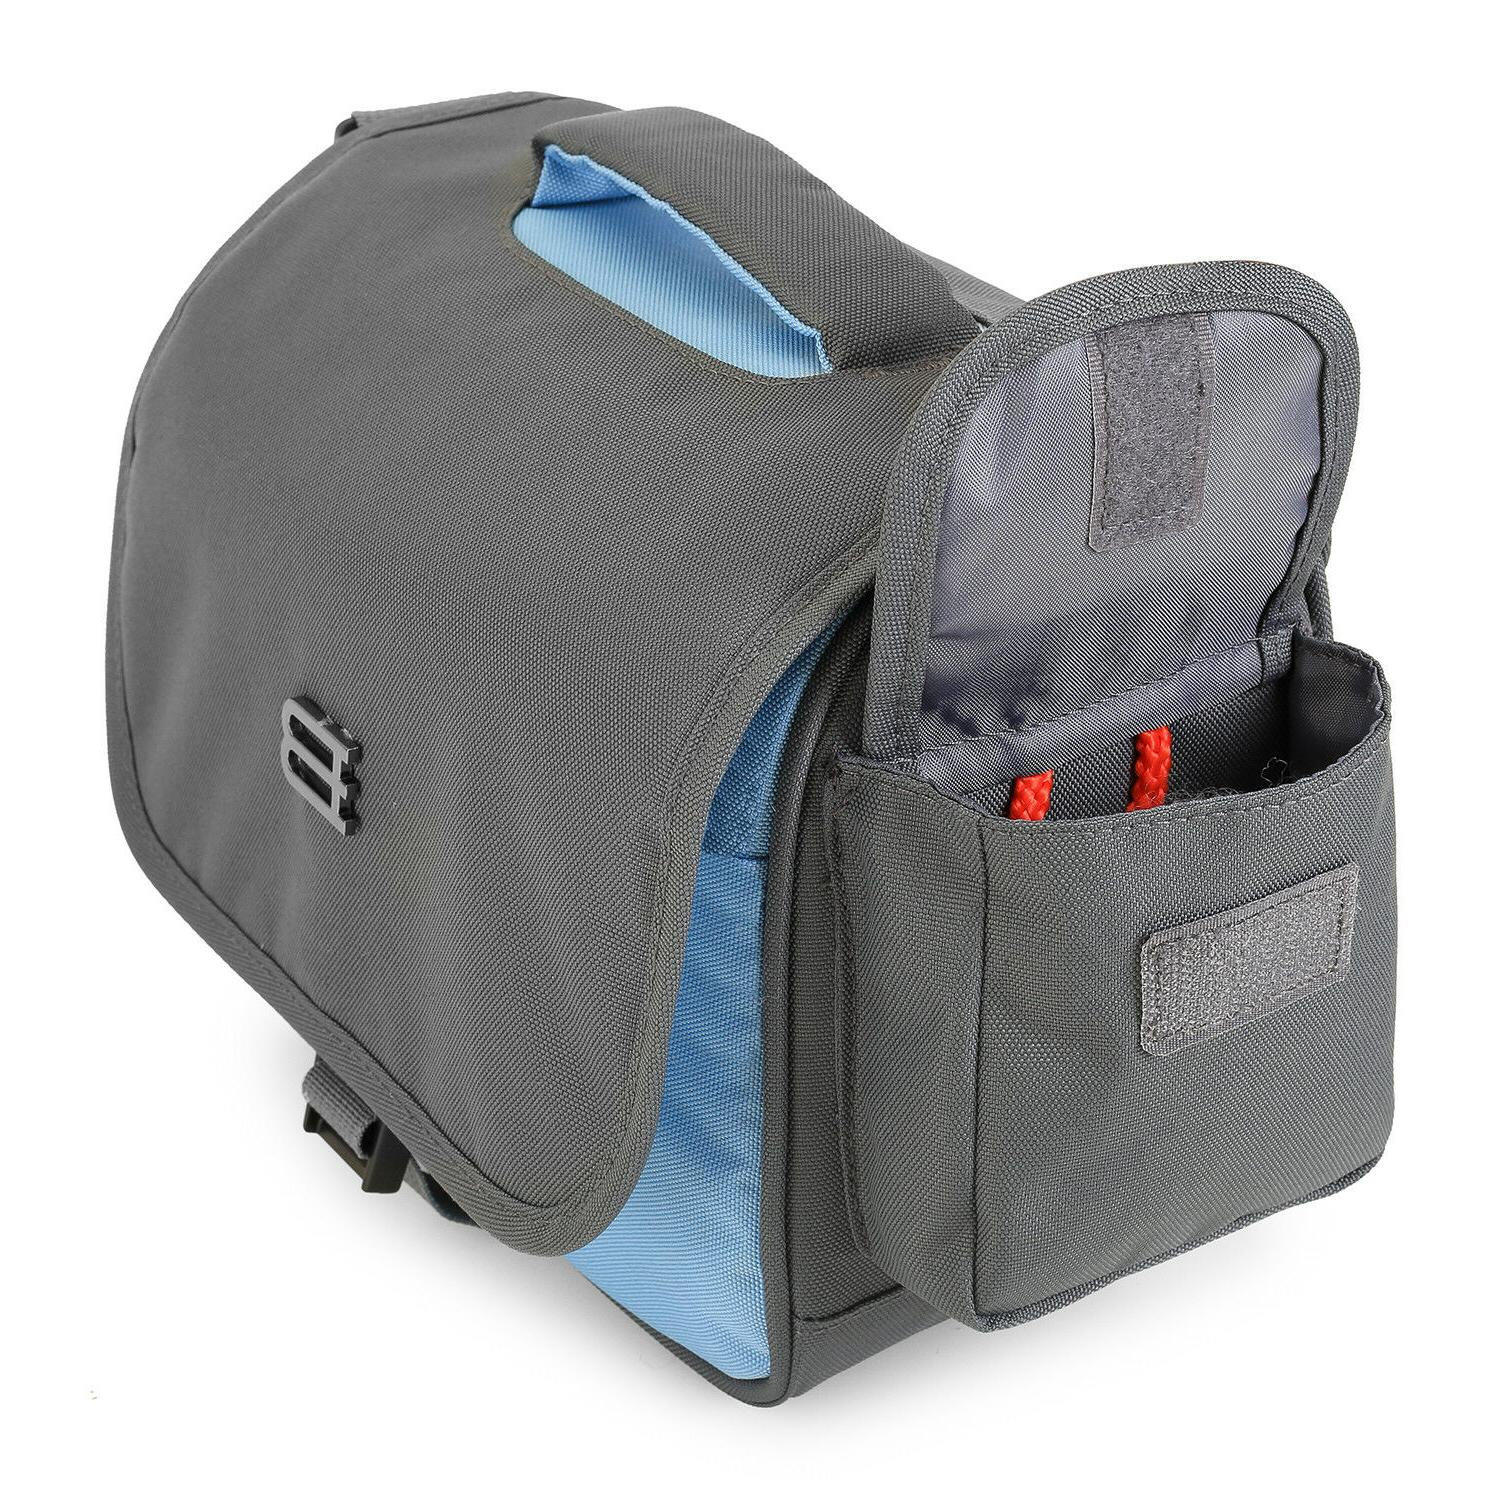 BAGSMART SLR/DSLR Camera Shoulder SLR Gadget Bag